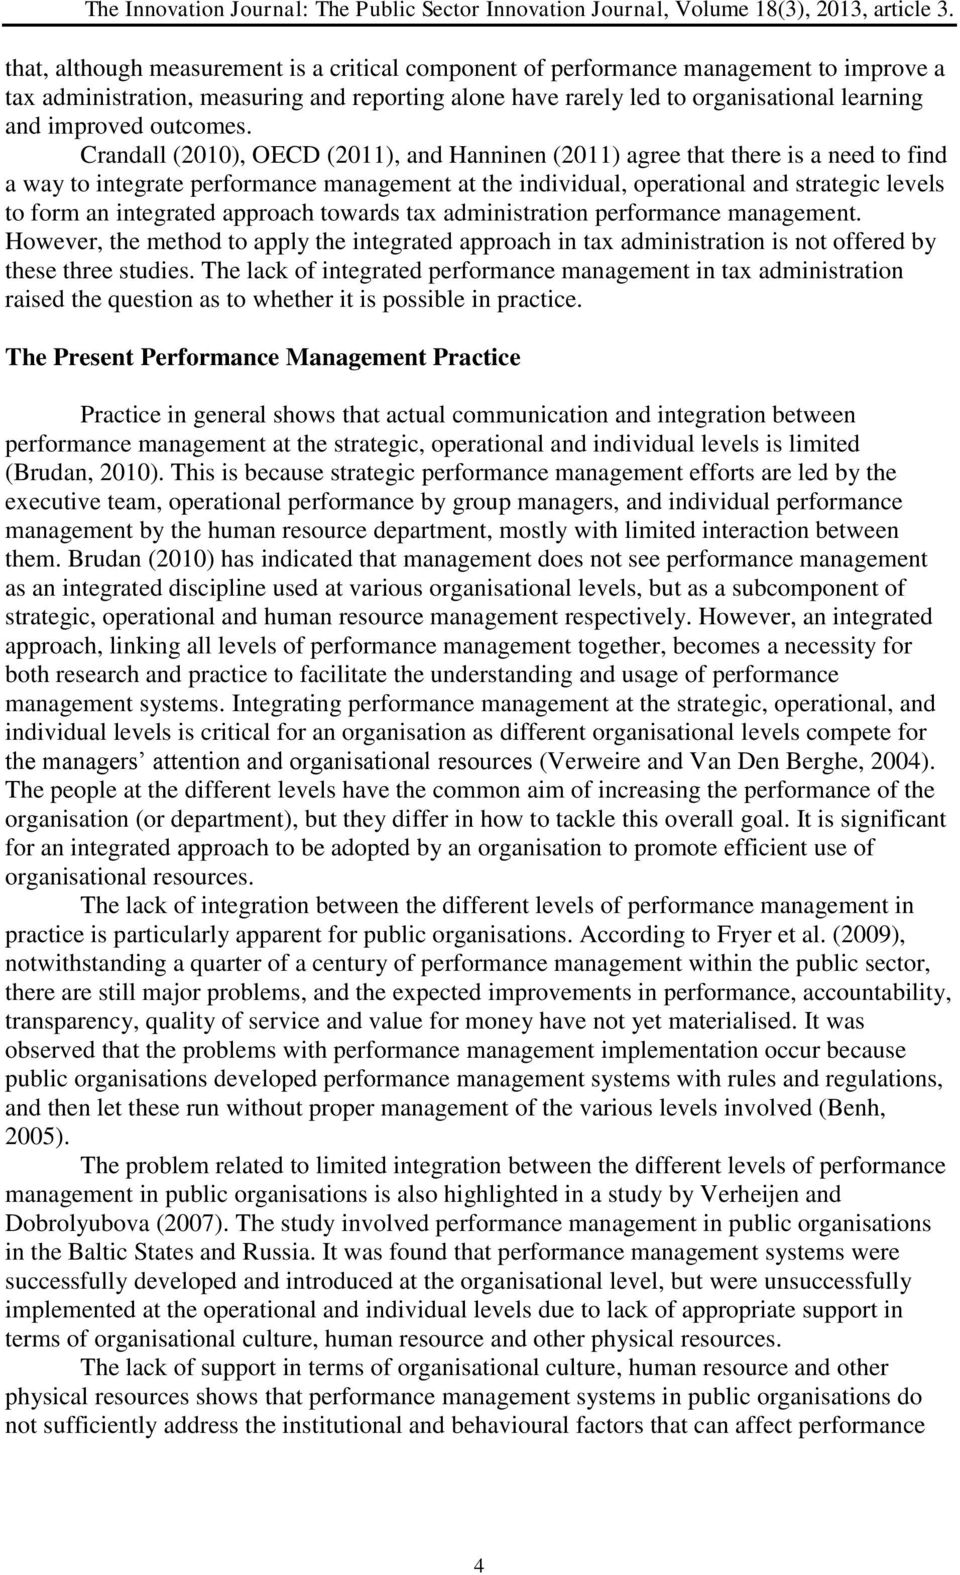 Crandall (2010), OECD (2011), and Hanninen (2011) agree that there is a need to find a way to integrate performance management at the individual, operational and strategic levels to form an